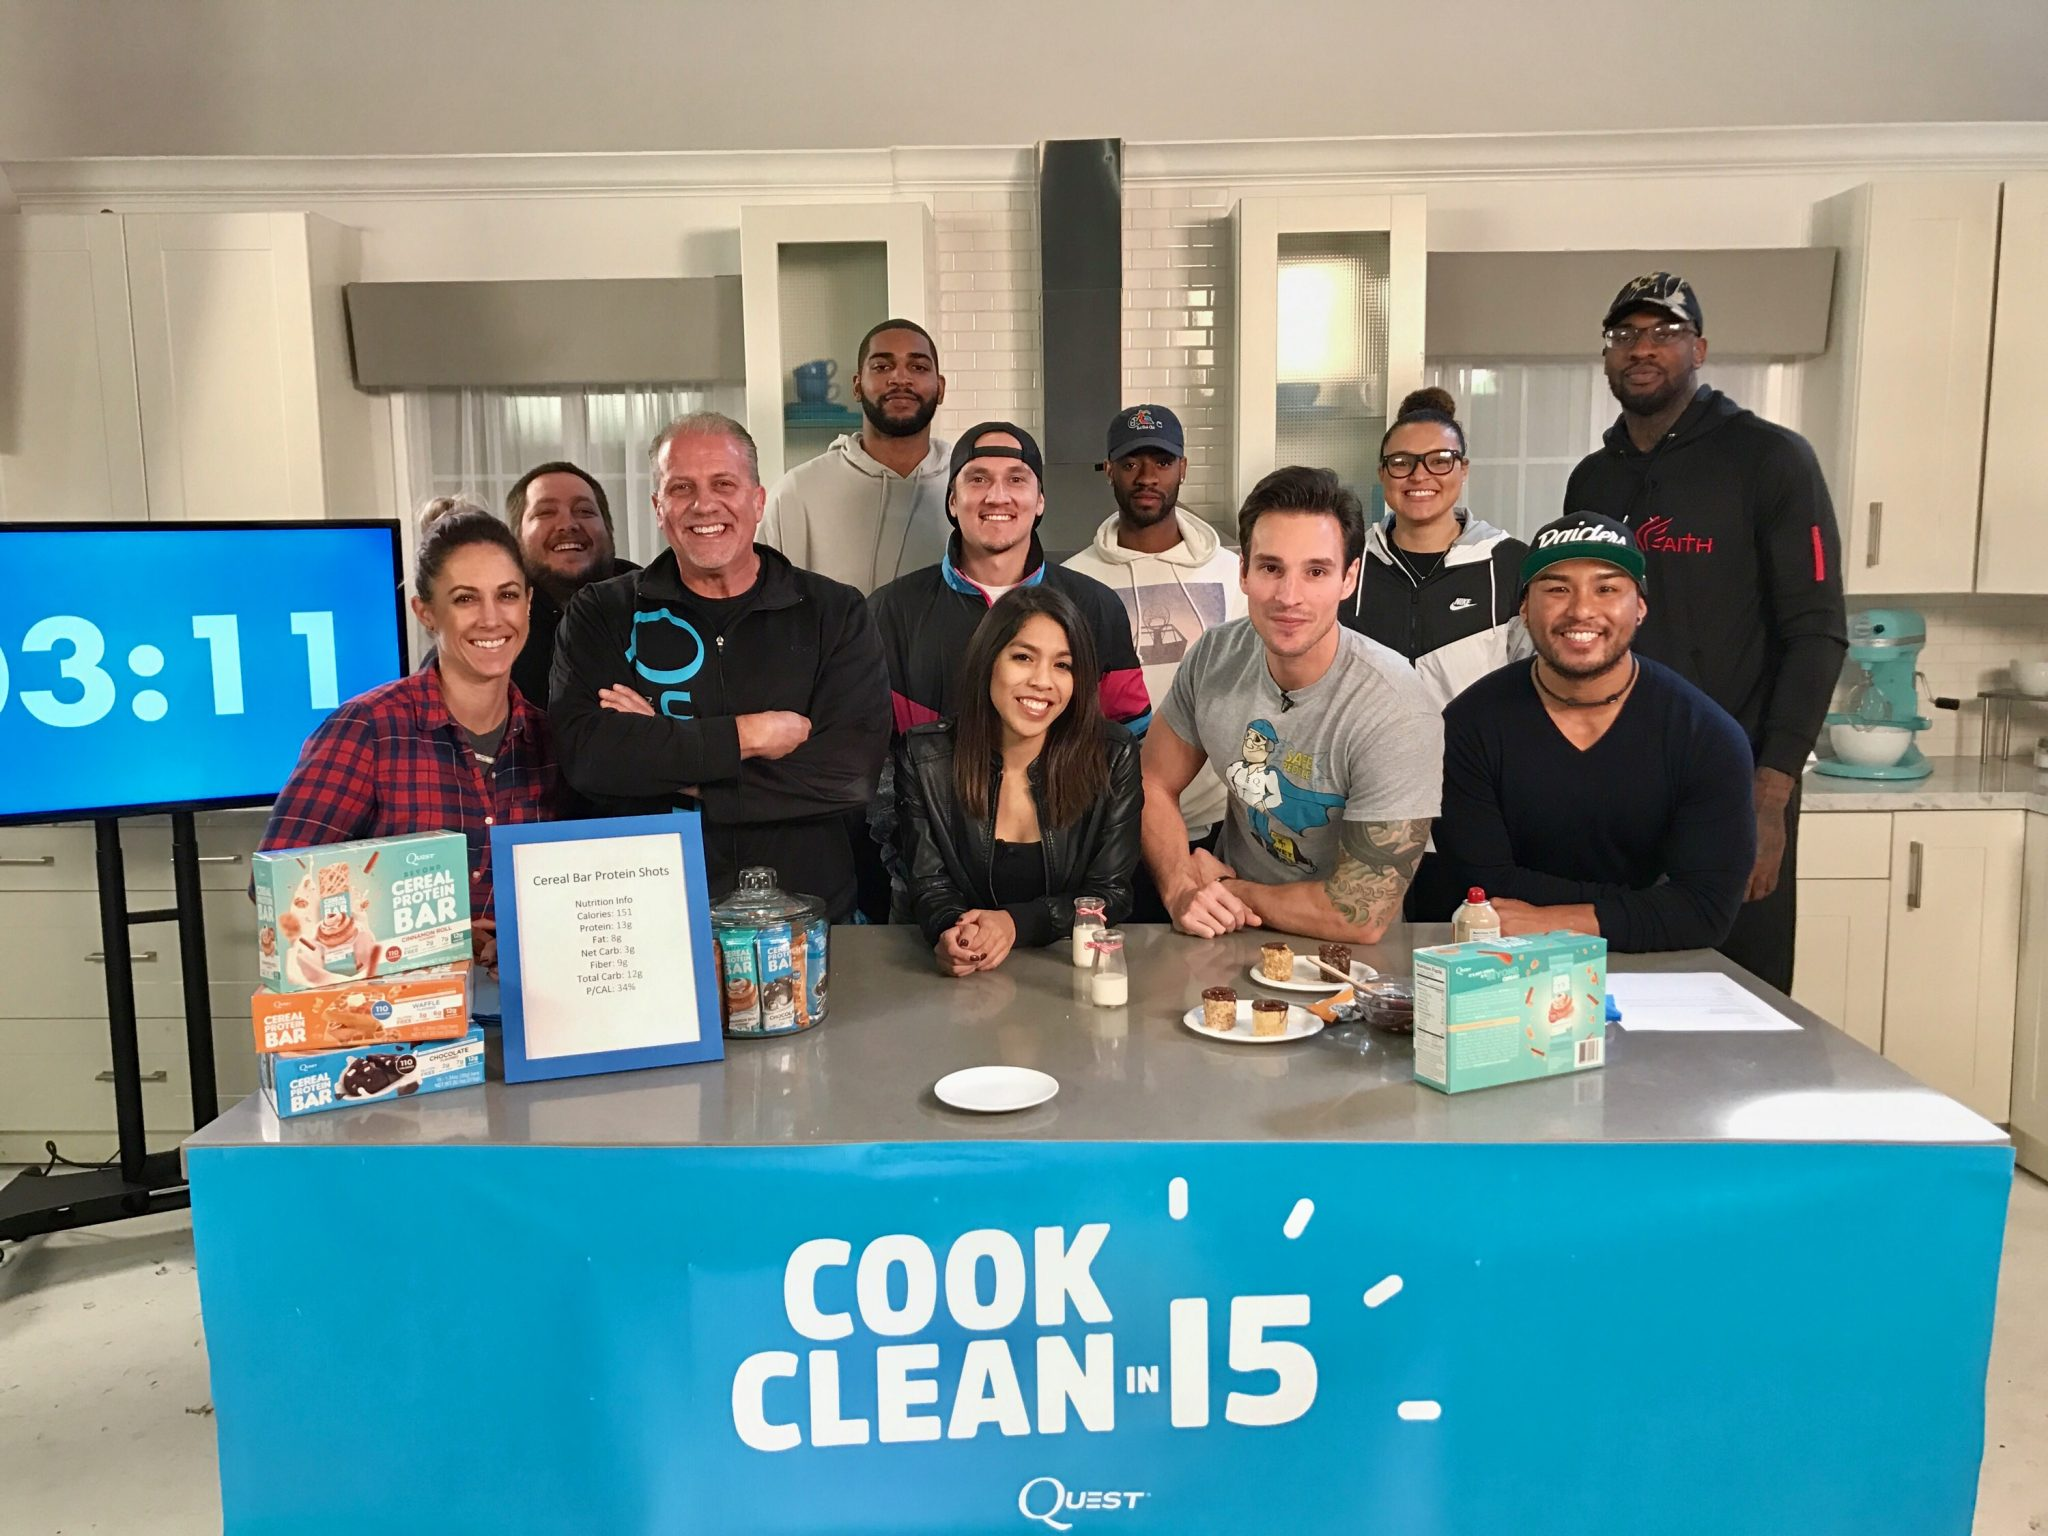 Cook Clean in 15 with Quest Nutrition